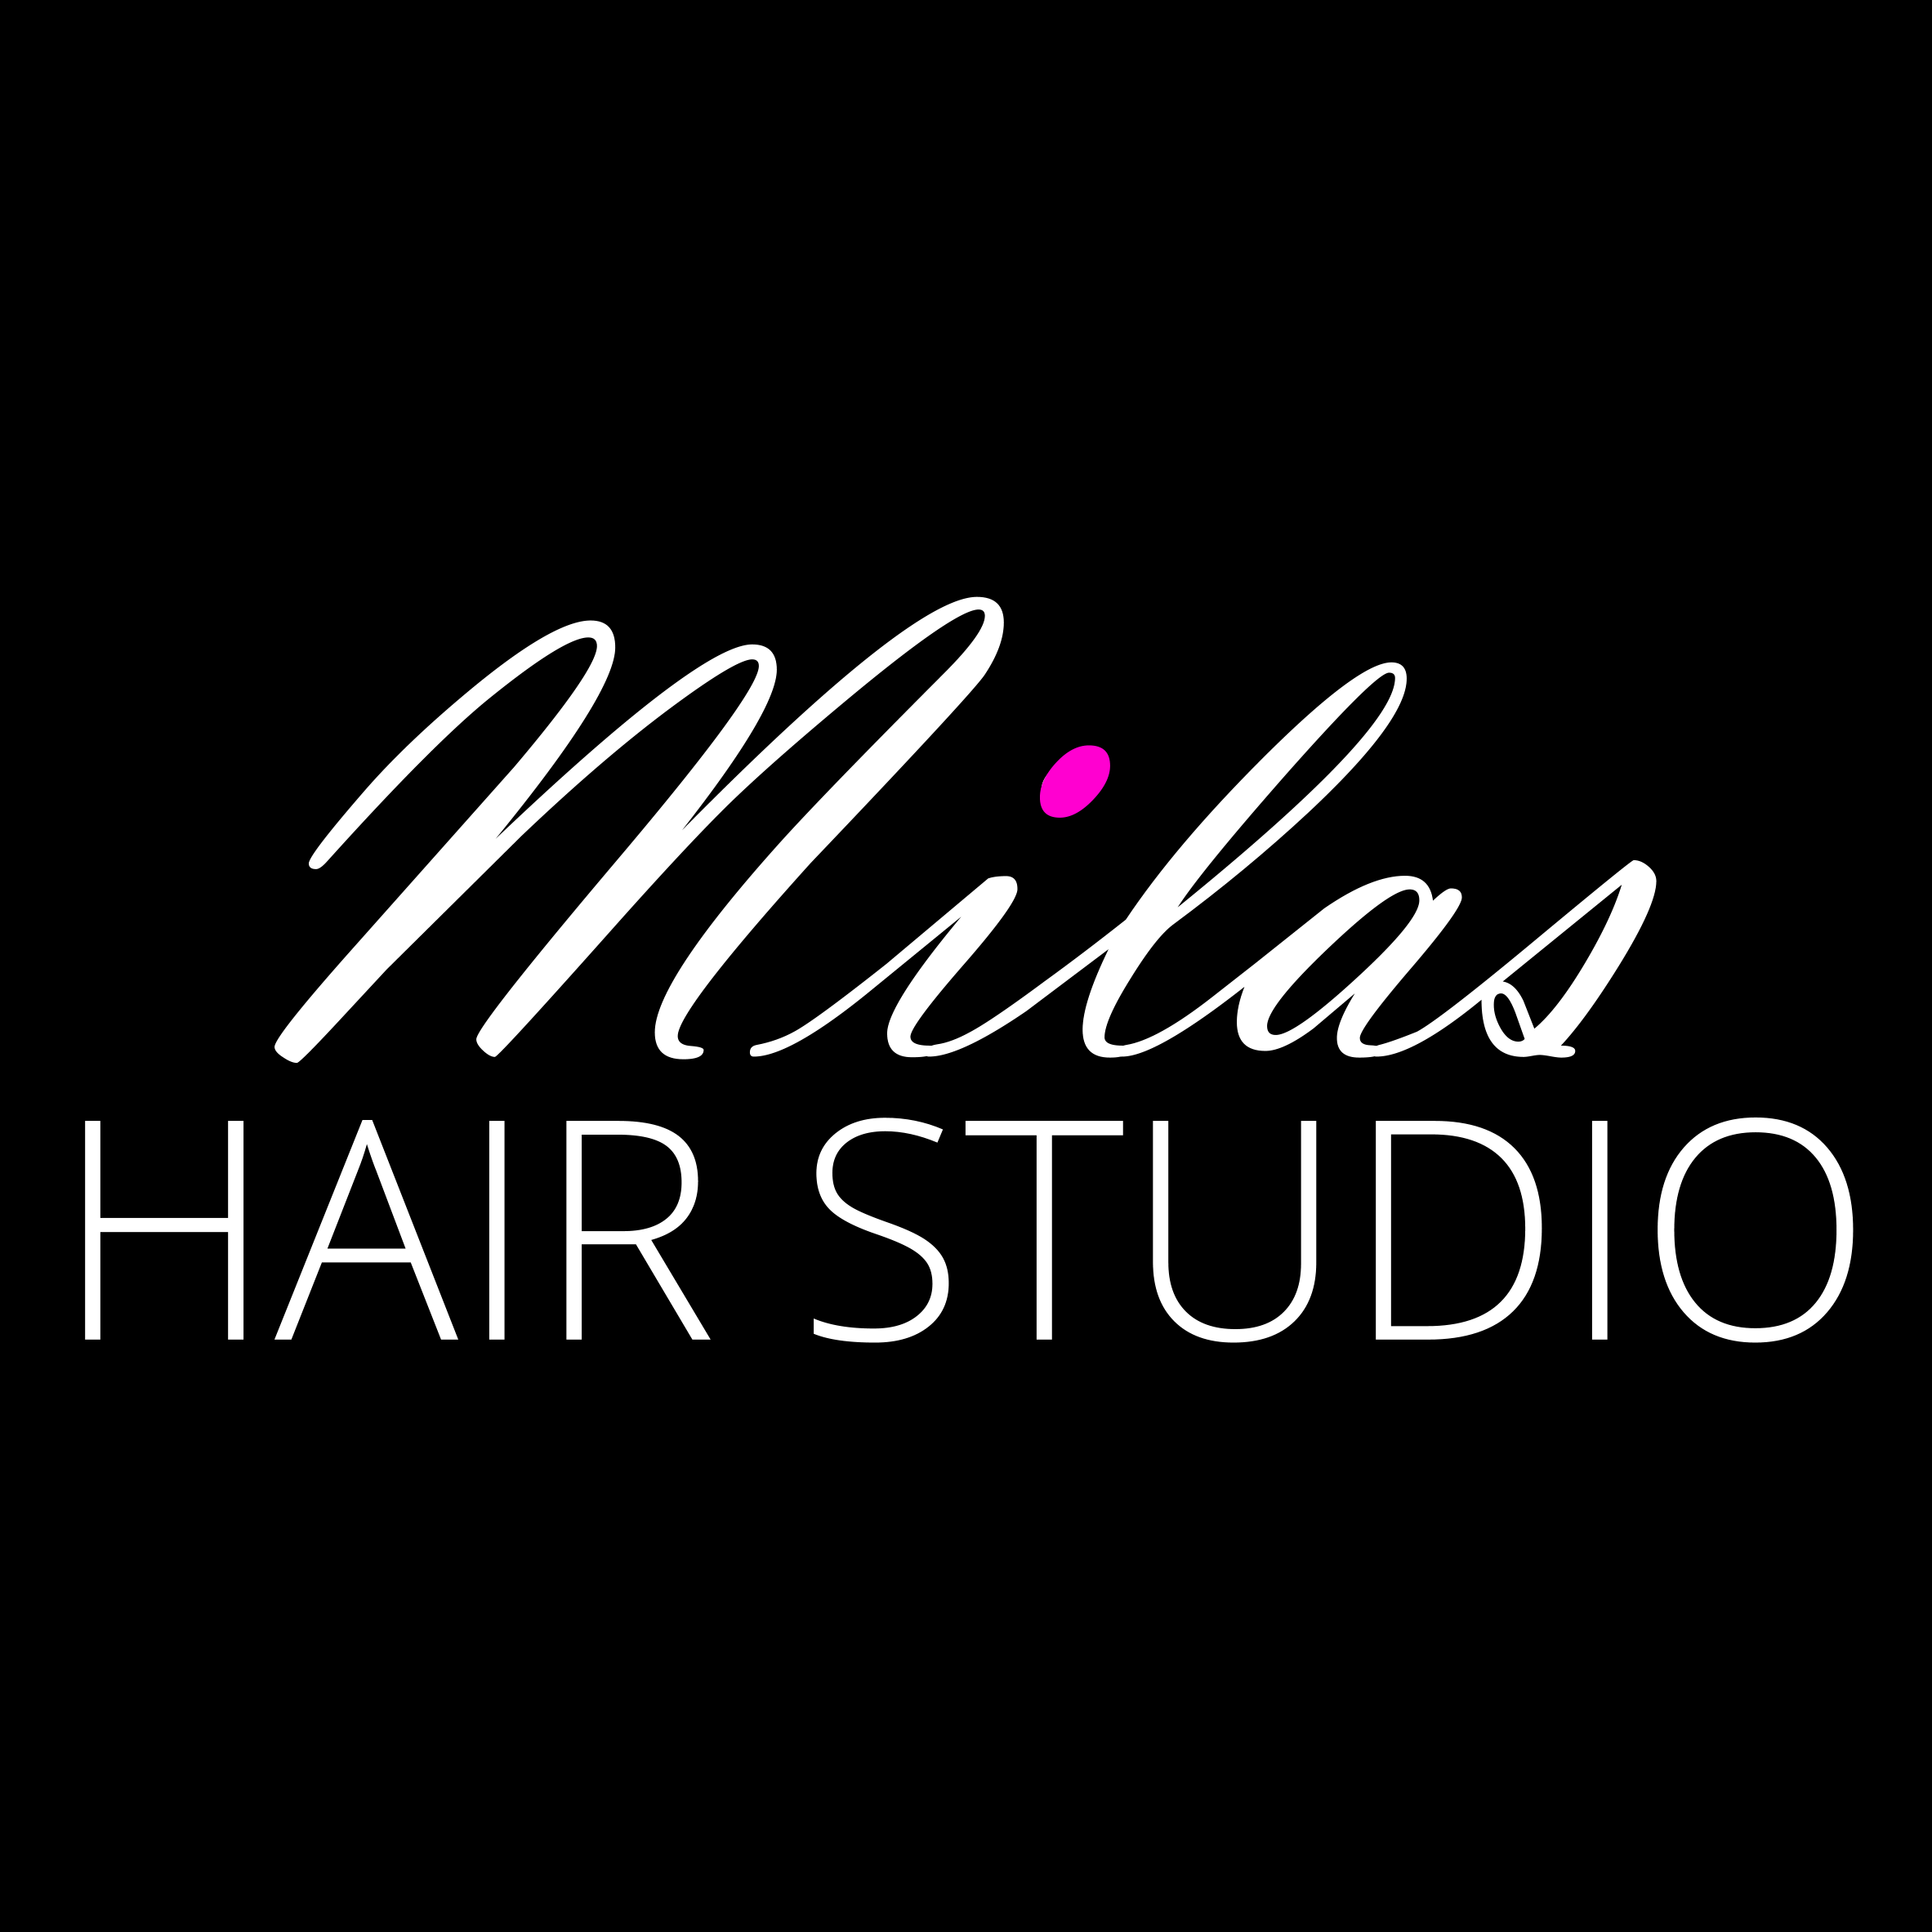 MILAS HAIR STUDIO